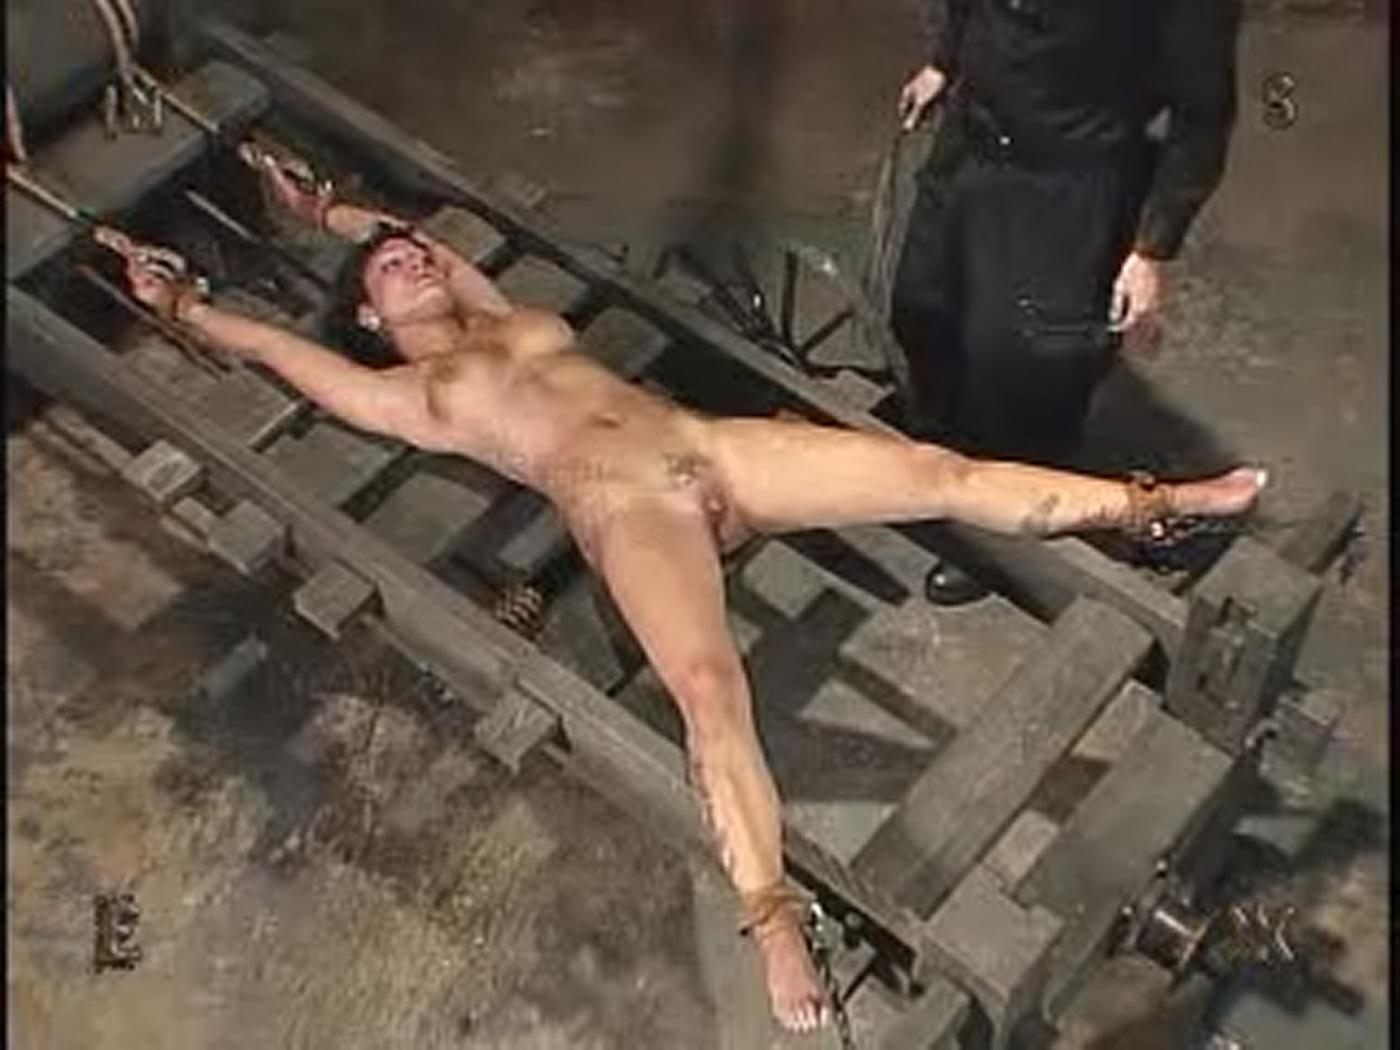 Nude on torture rack exploited galleries